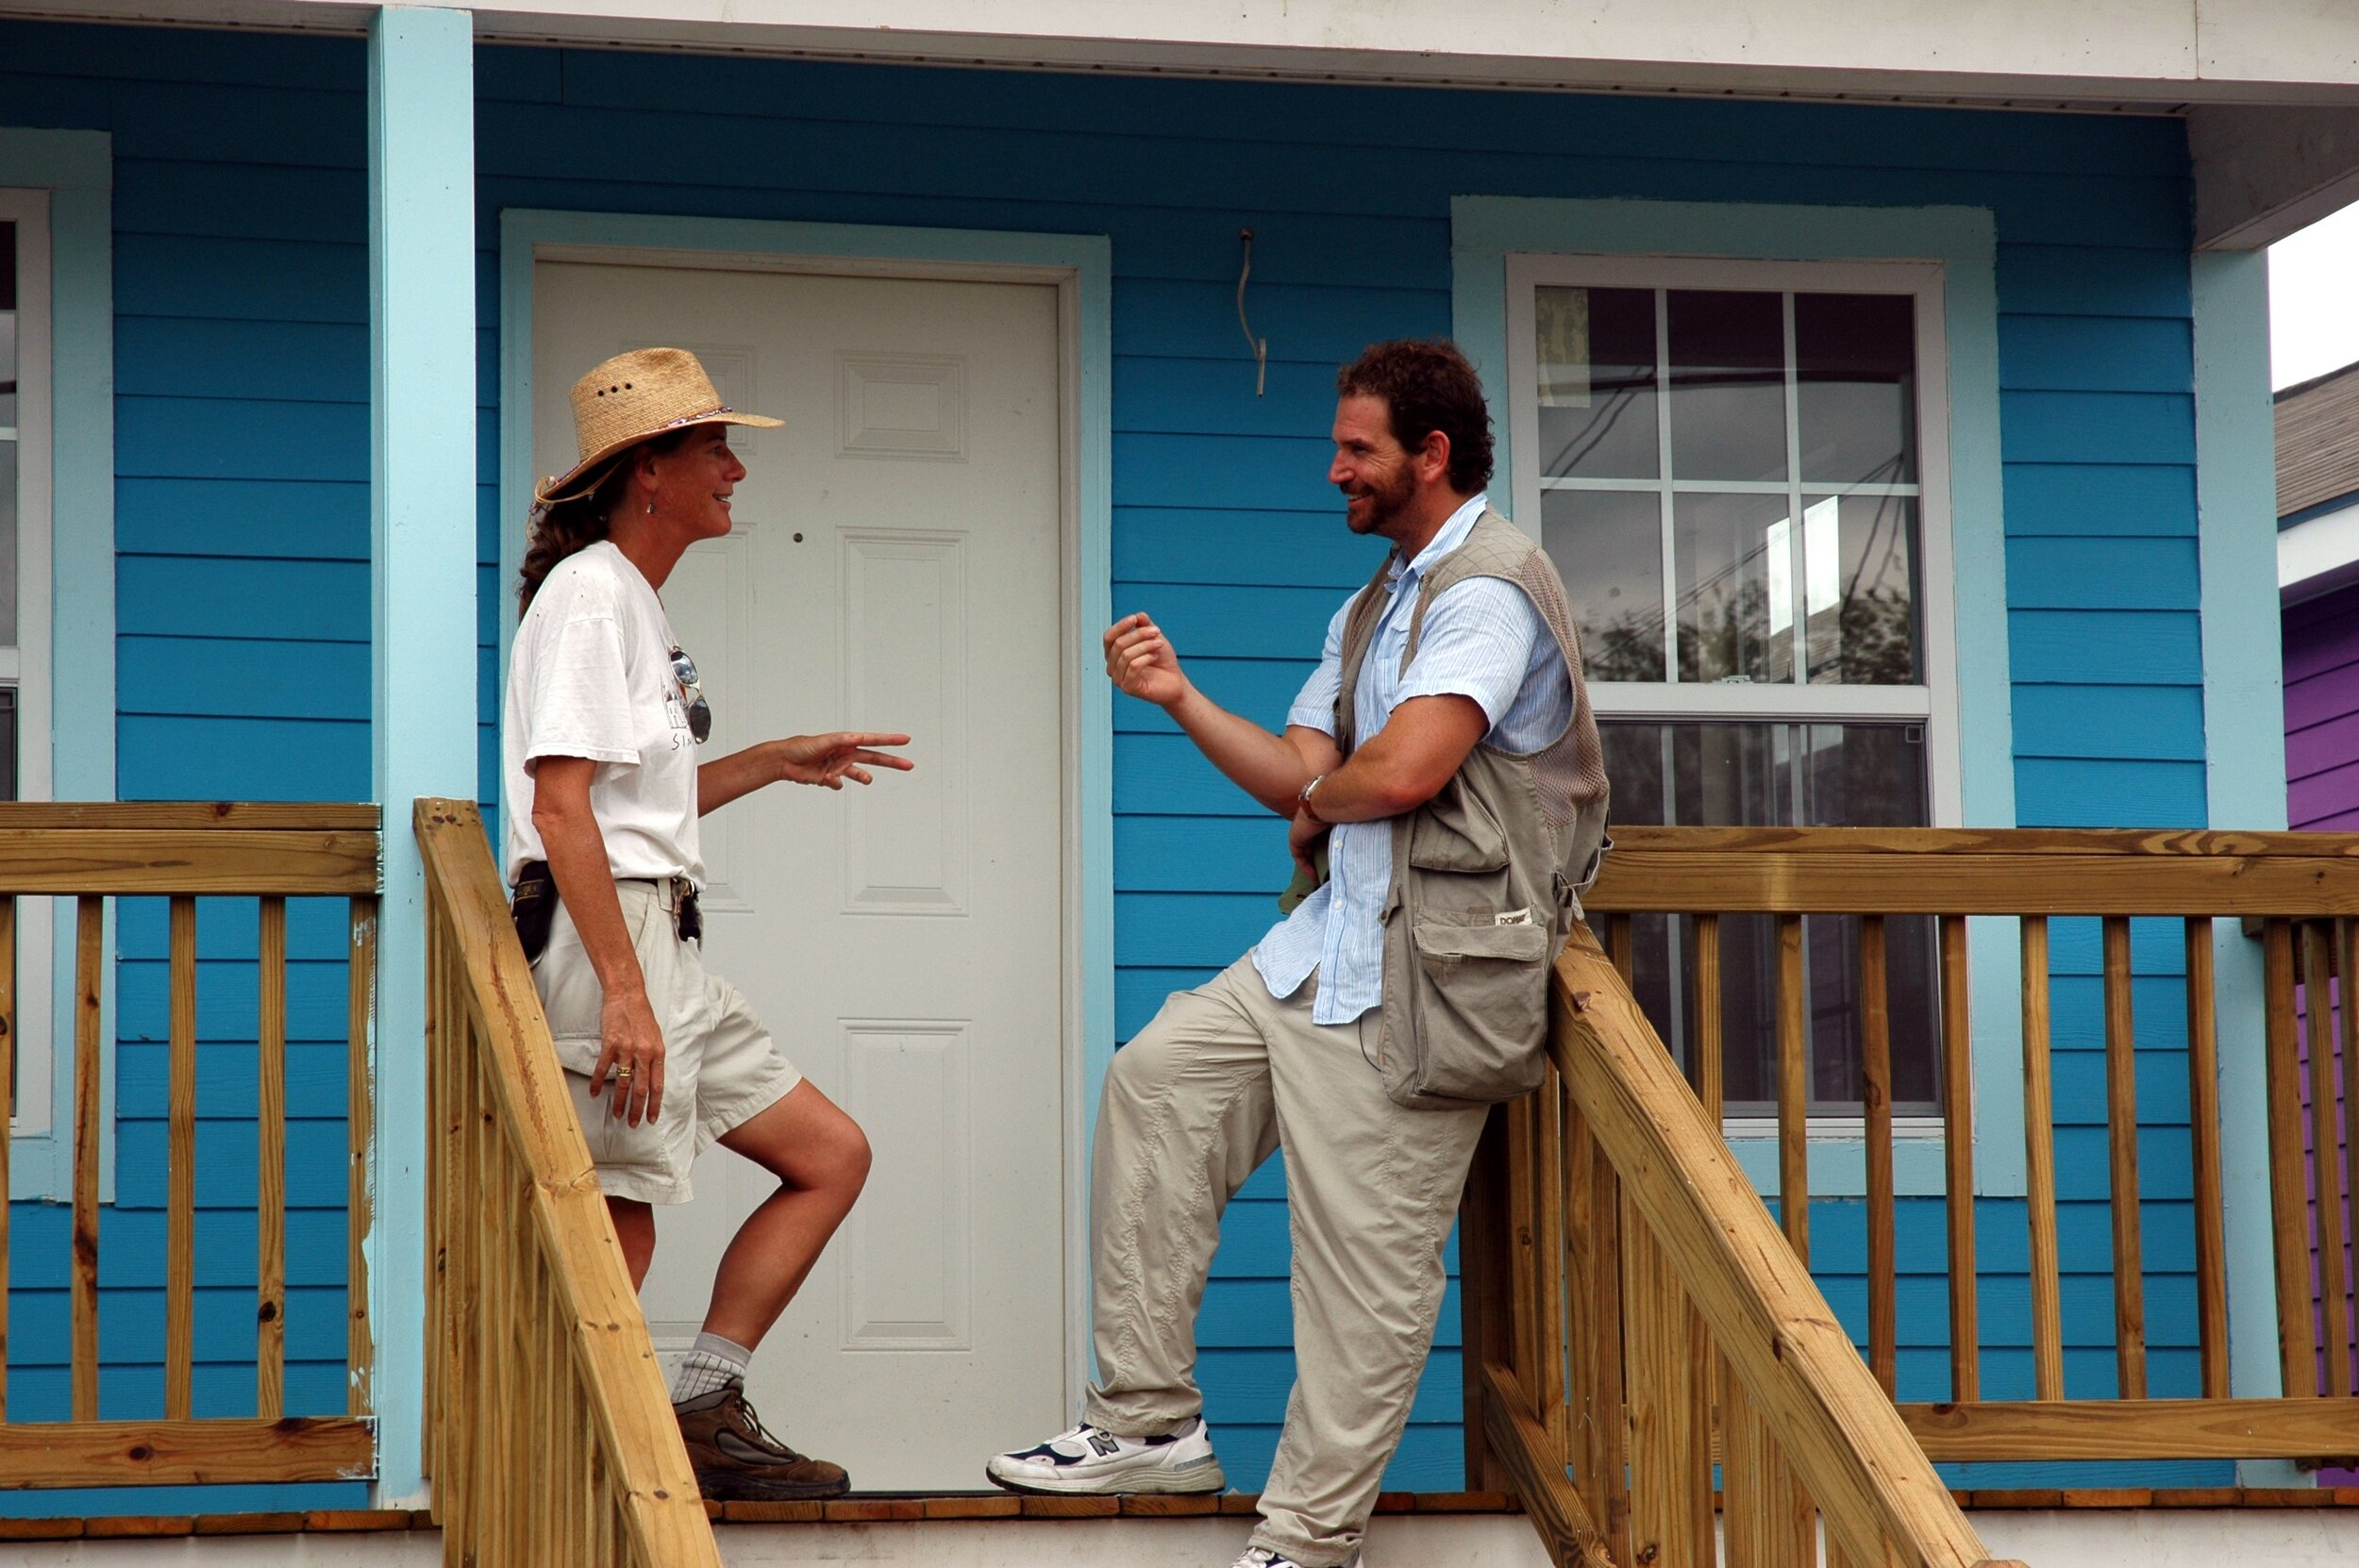 Explore Series: New Orleans - Charles visits New Orleans post Katrina